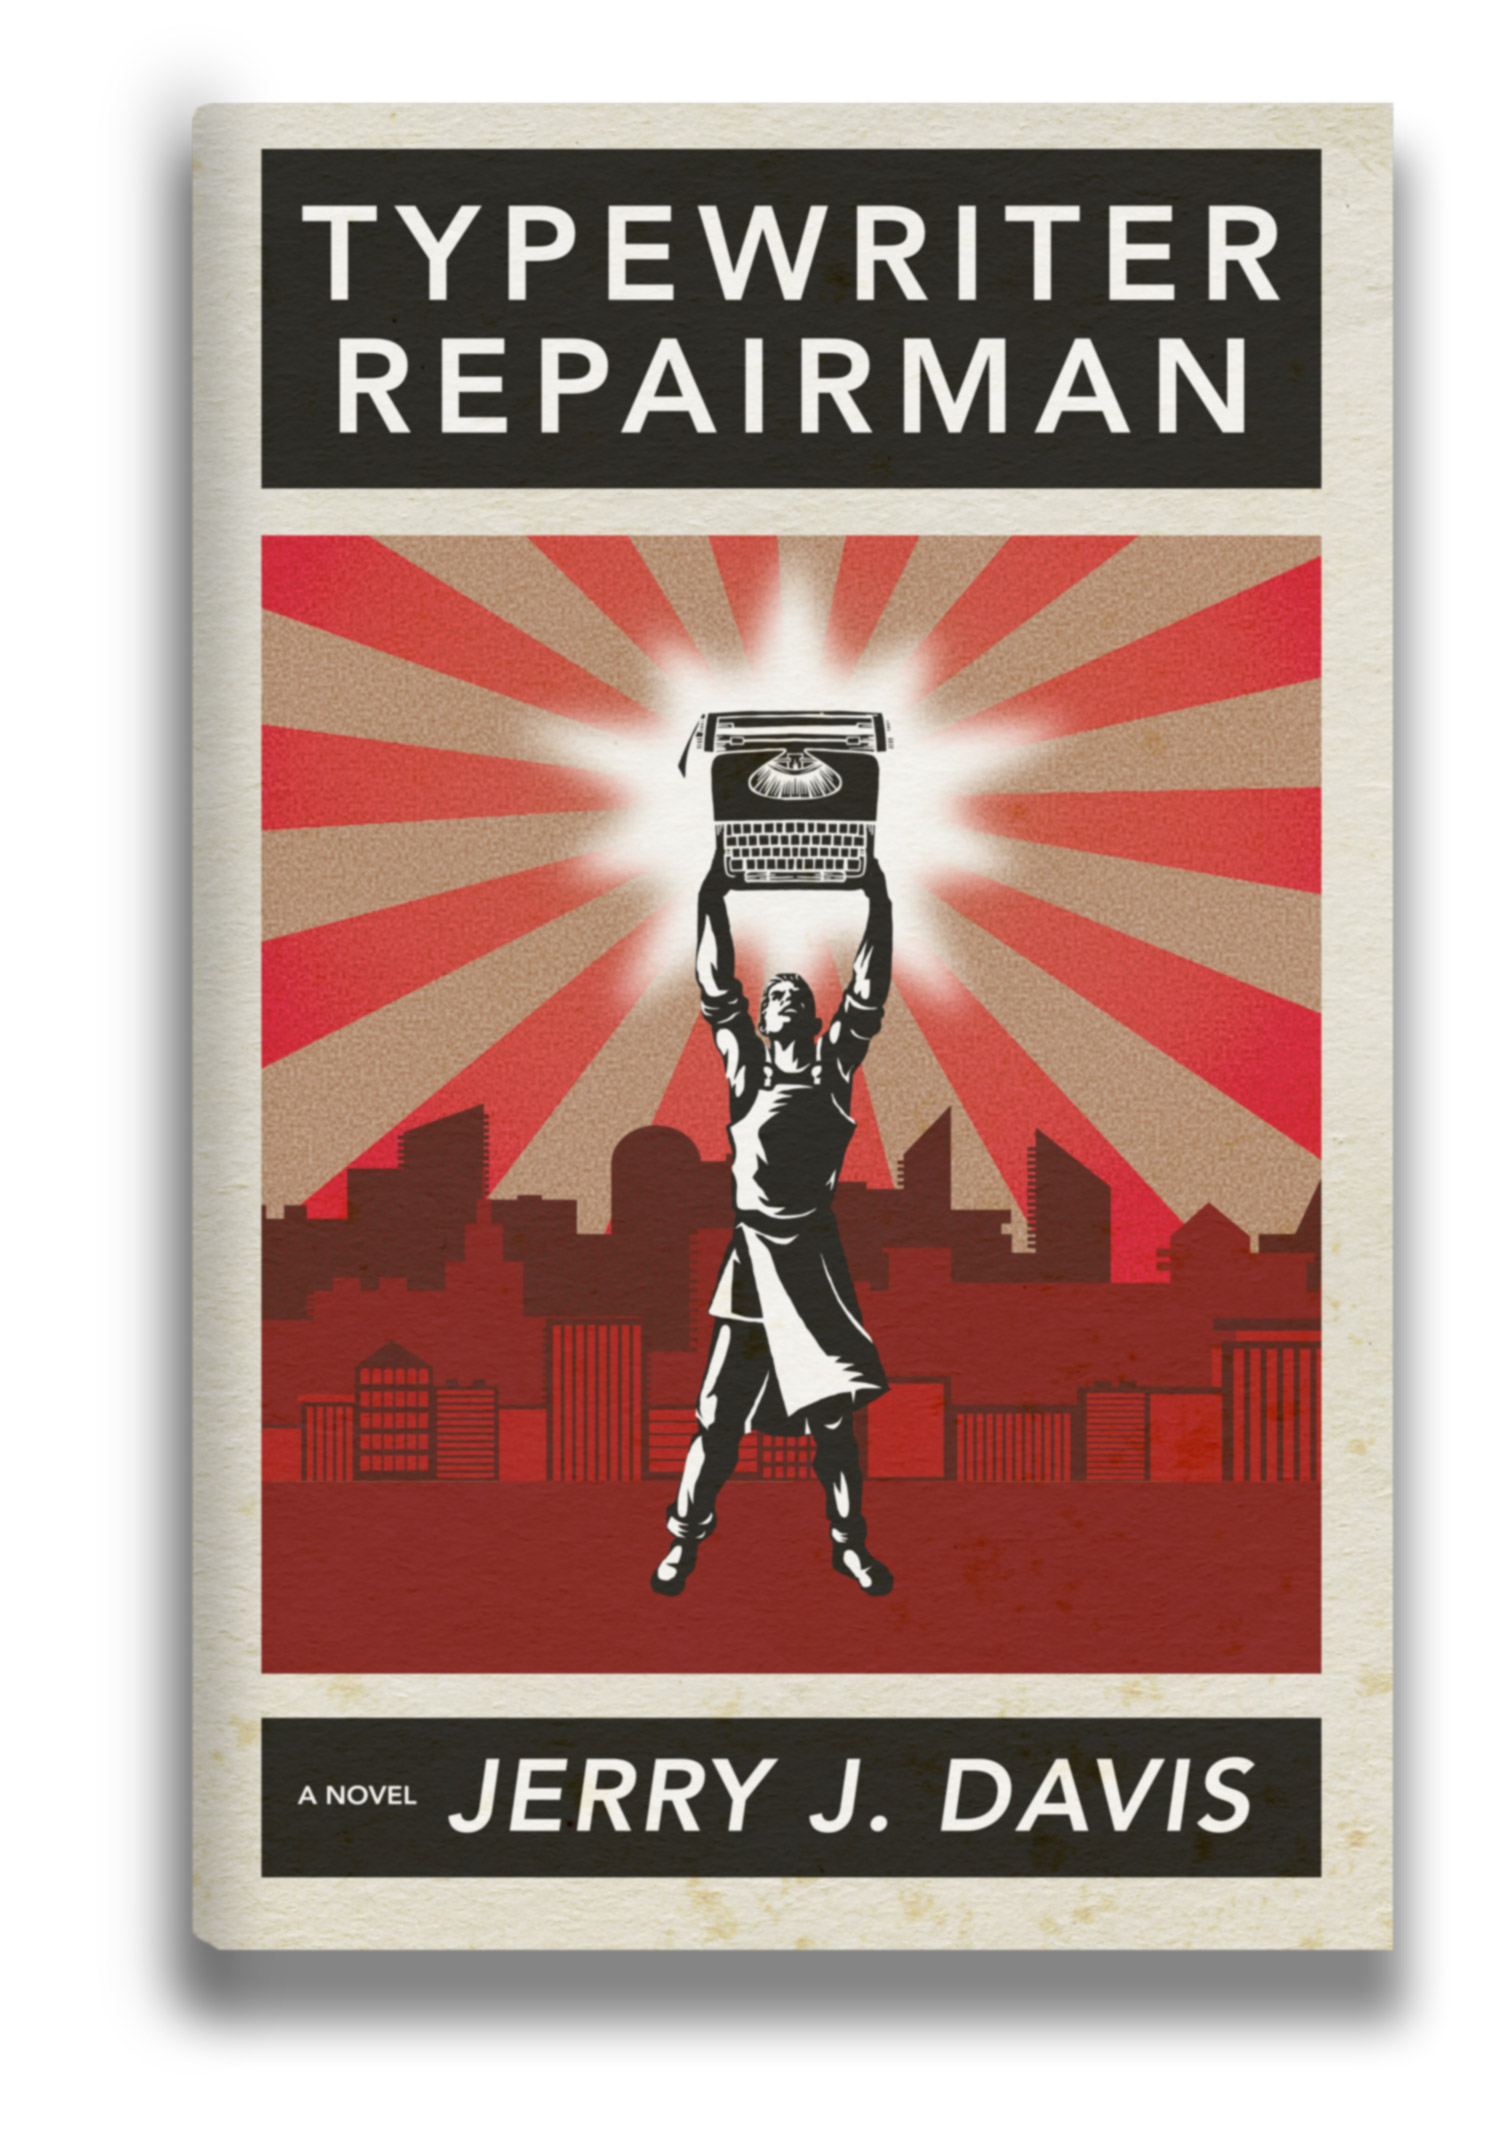 Typewriter Repairman